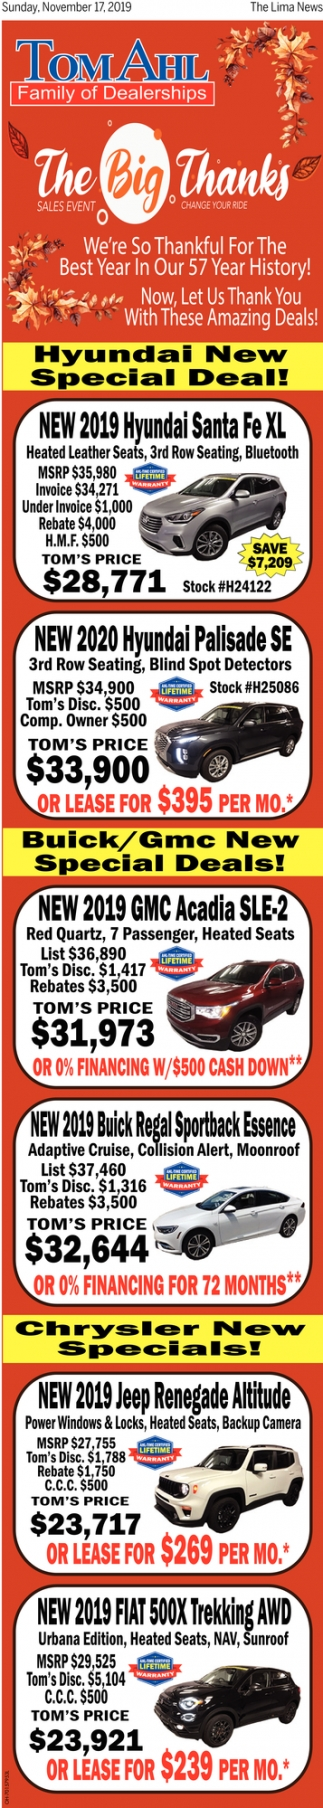 Hyundai New Sepecial Deal!